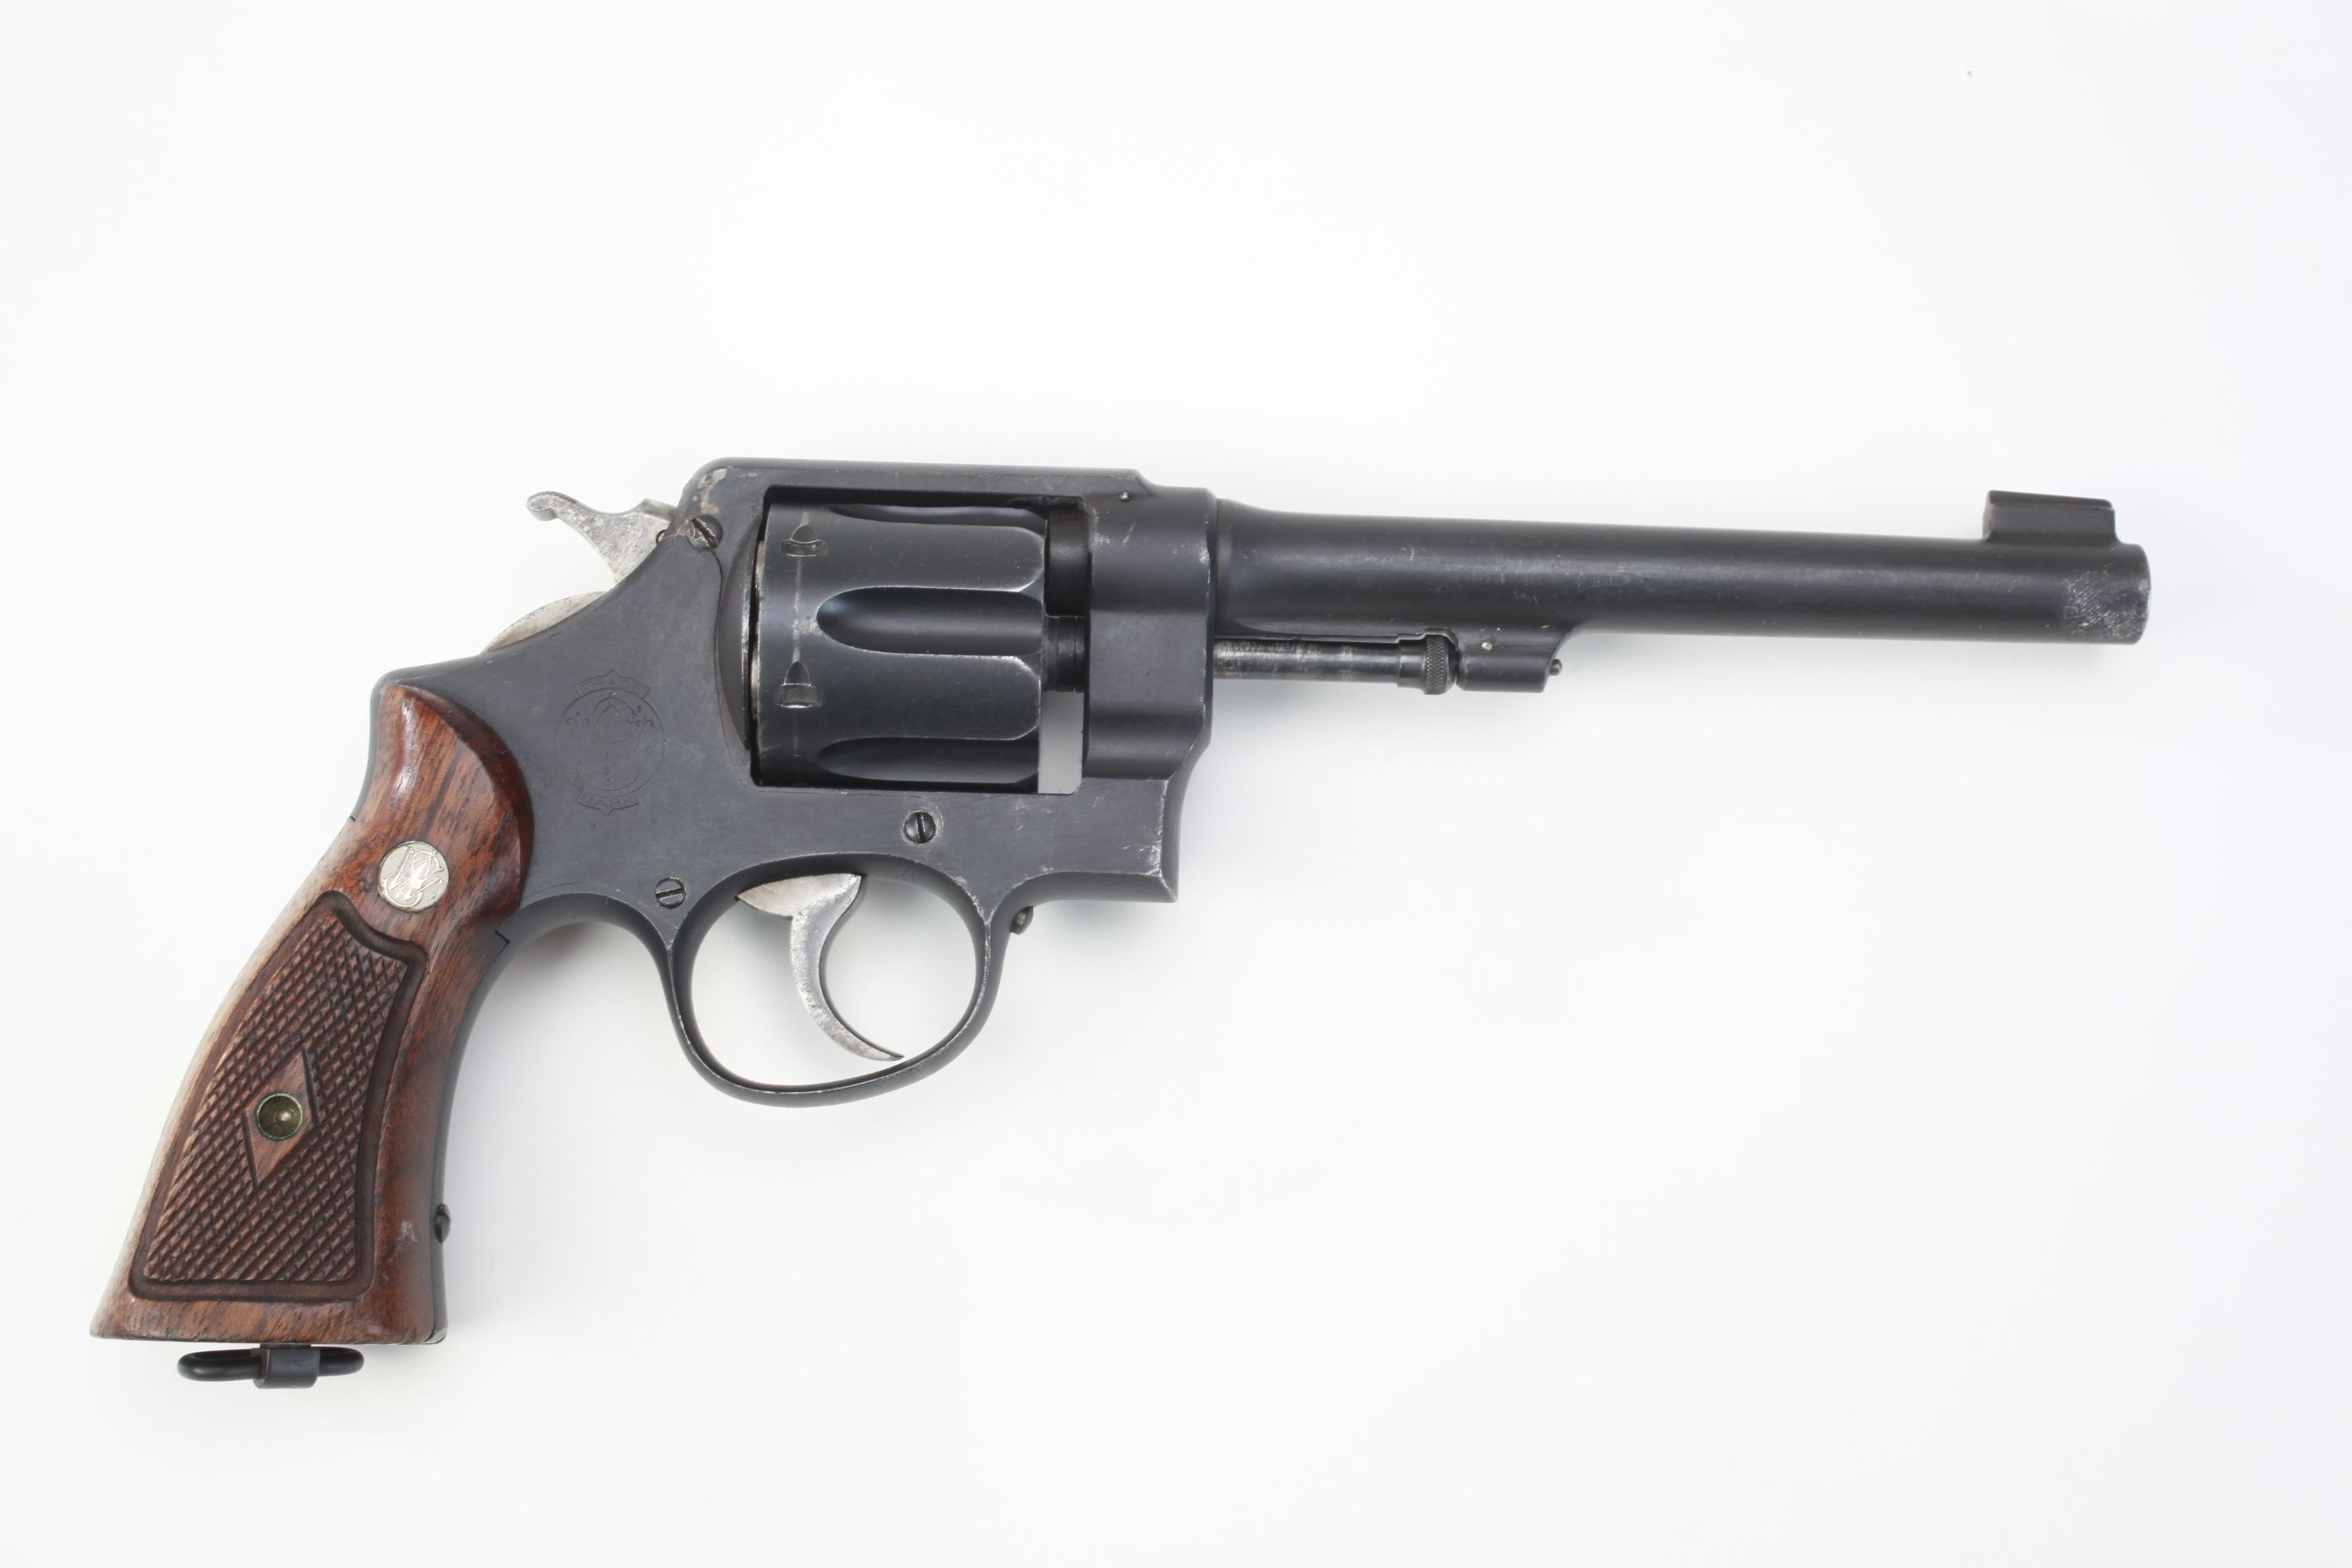 U.S. Smith & Wesson Model 1917 revolver (1)